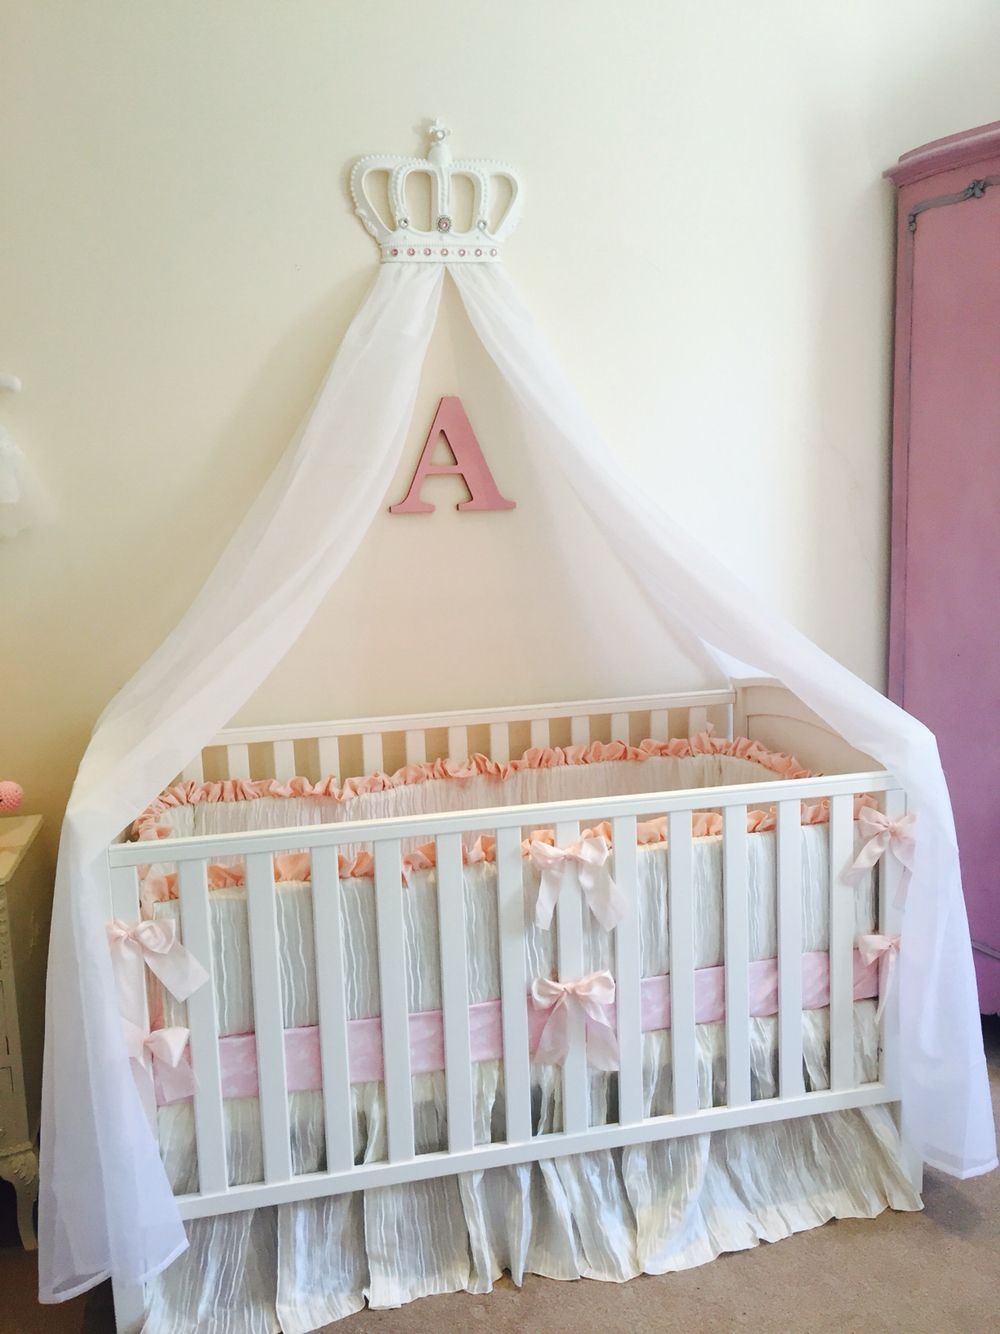 Cot crib princess white pink bed canopy crown & Cot crib princess white pink bed canopy crown | Our little bundle ...